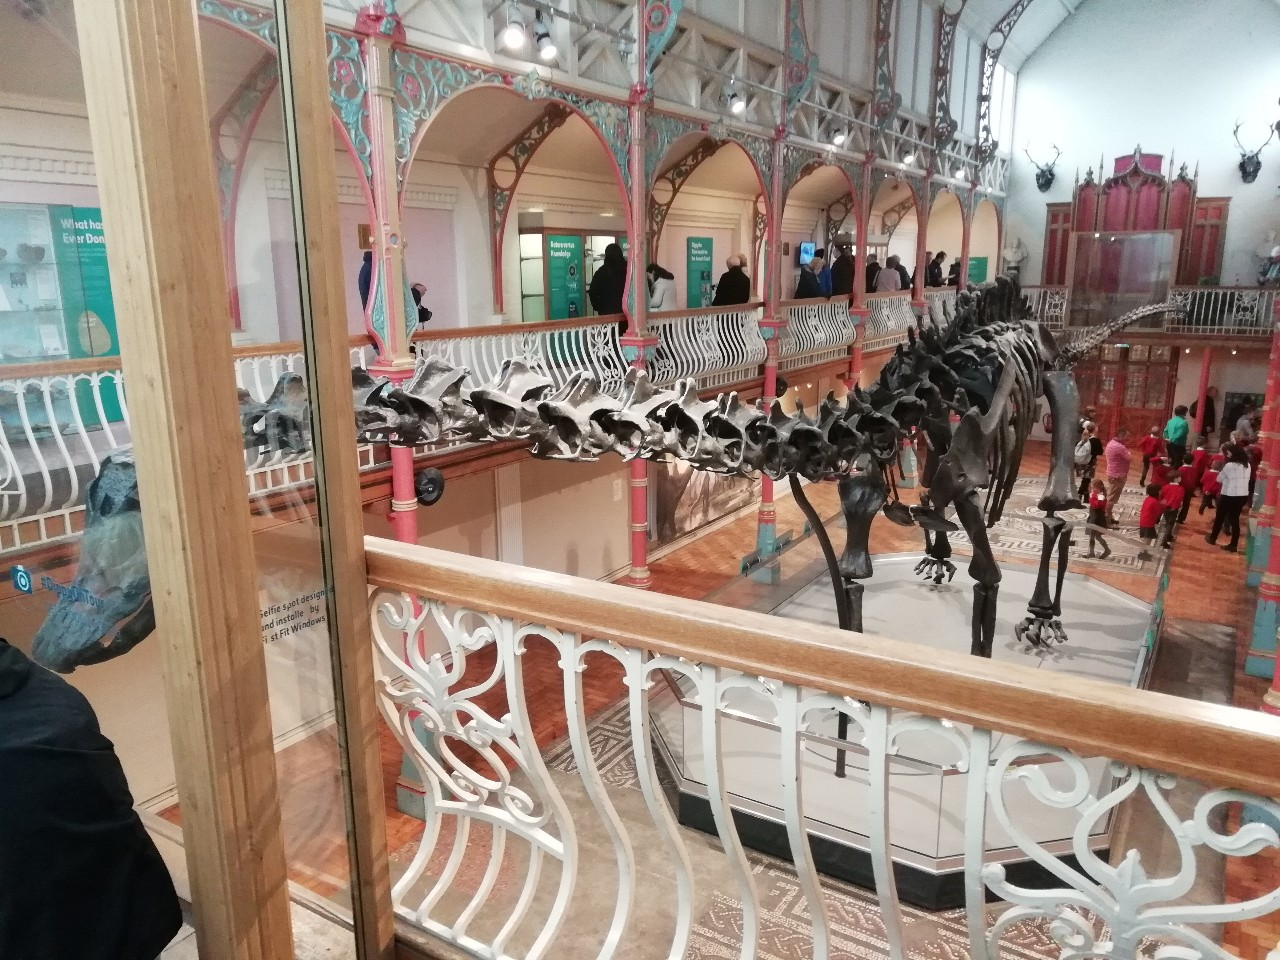 Dippy the Dinosaur as seen at the Dorset county museum